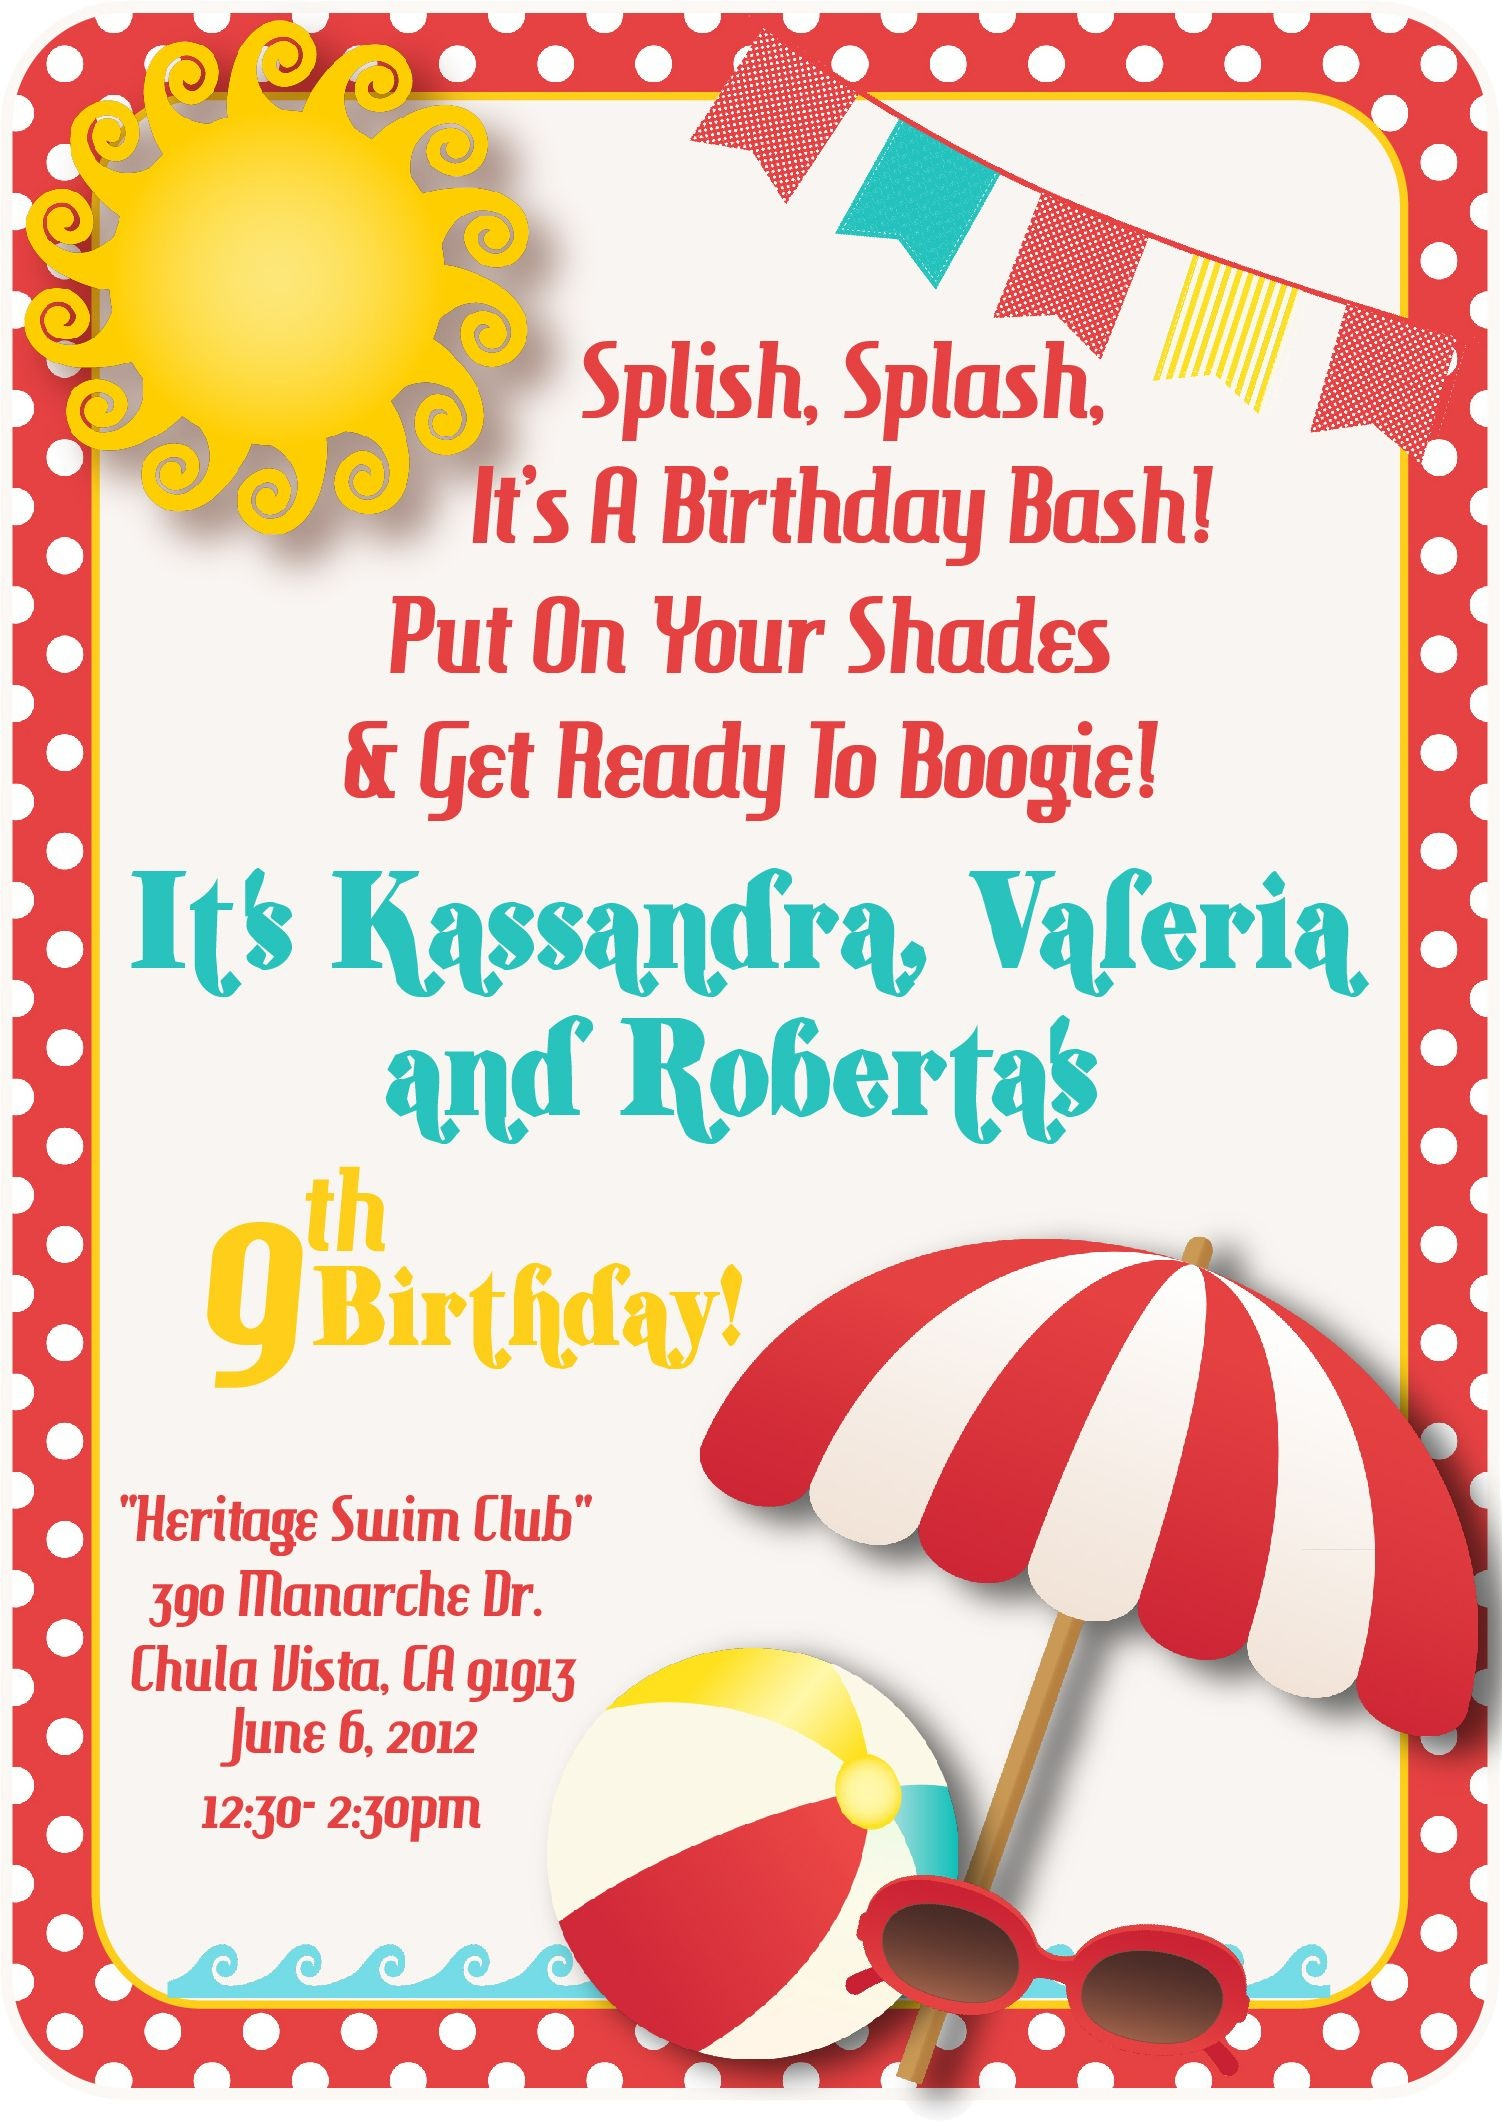 Download A Free Printable Party Invitation Template With A Clipart - Free Printable Water Birthday Party Invitations